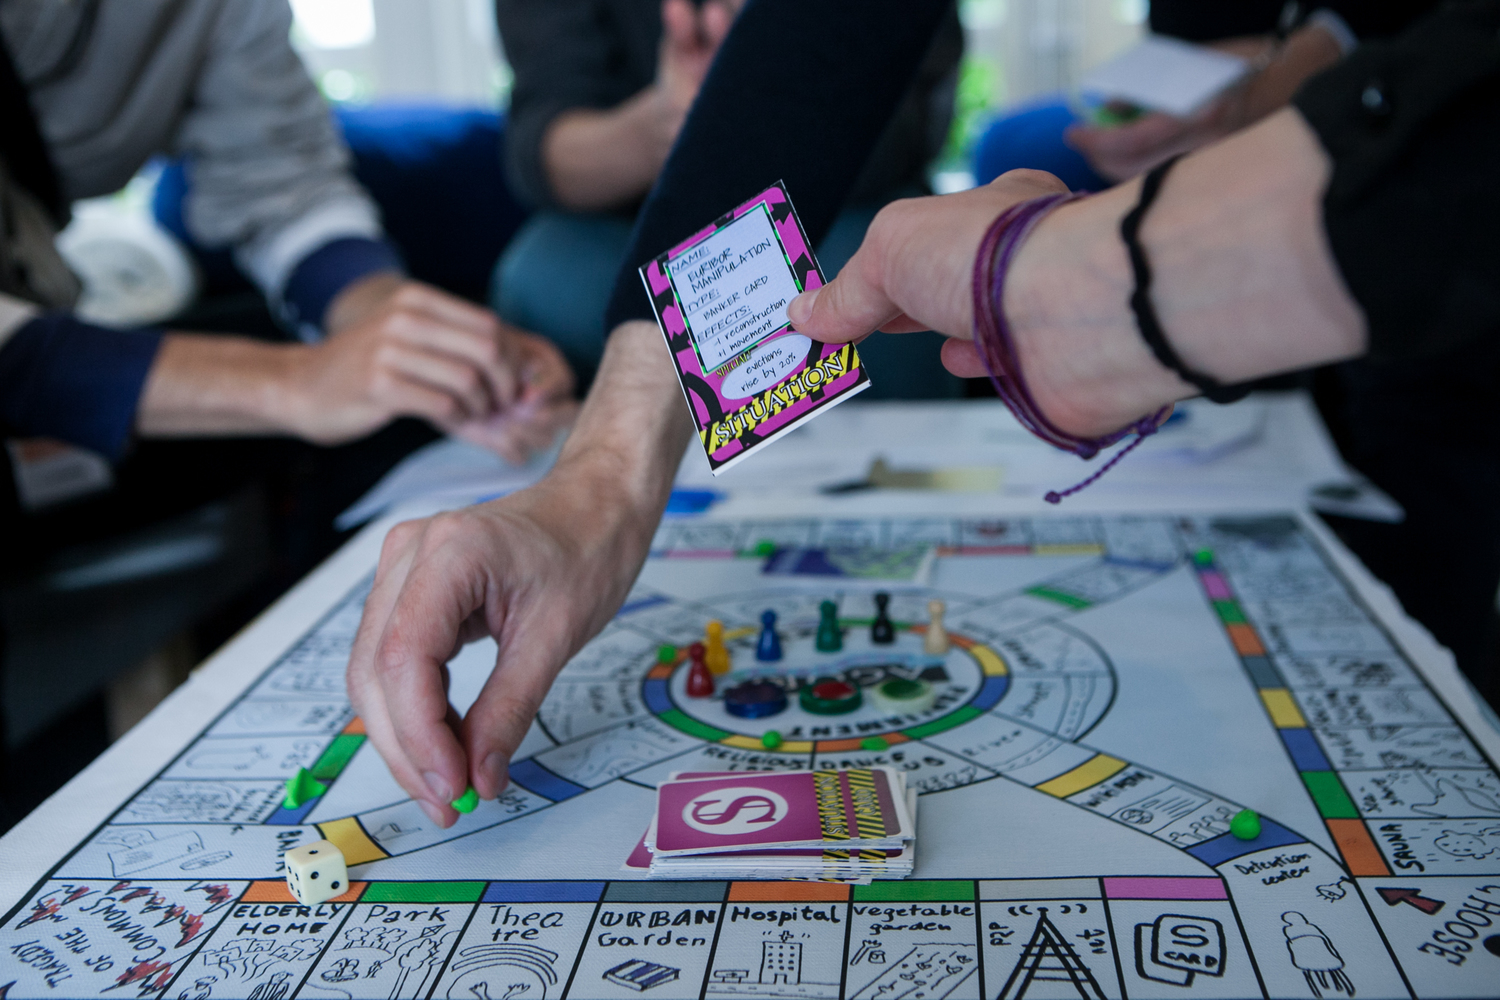 Commonspoly, a hacked version of Monopoly. Photo by Julio Albarrán